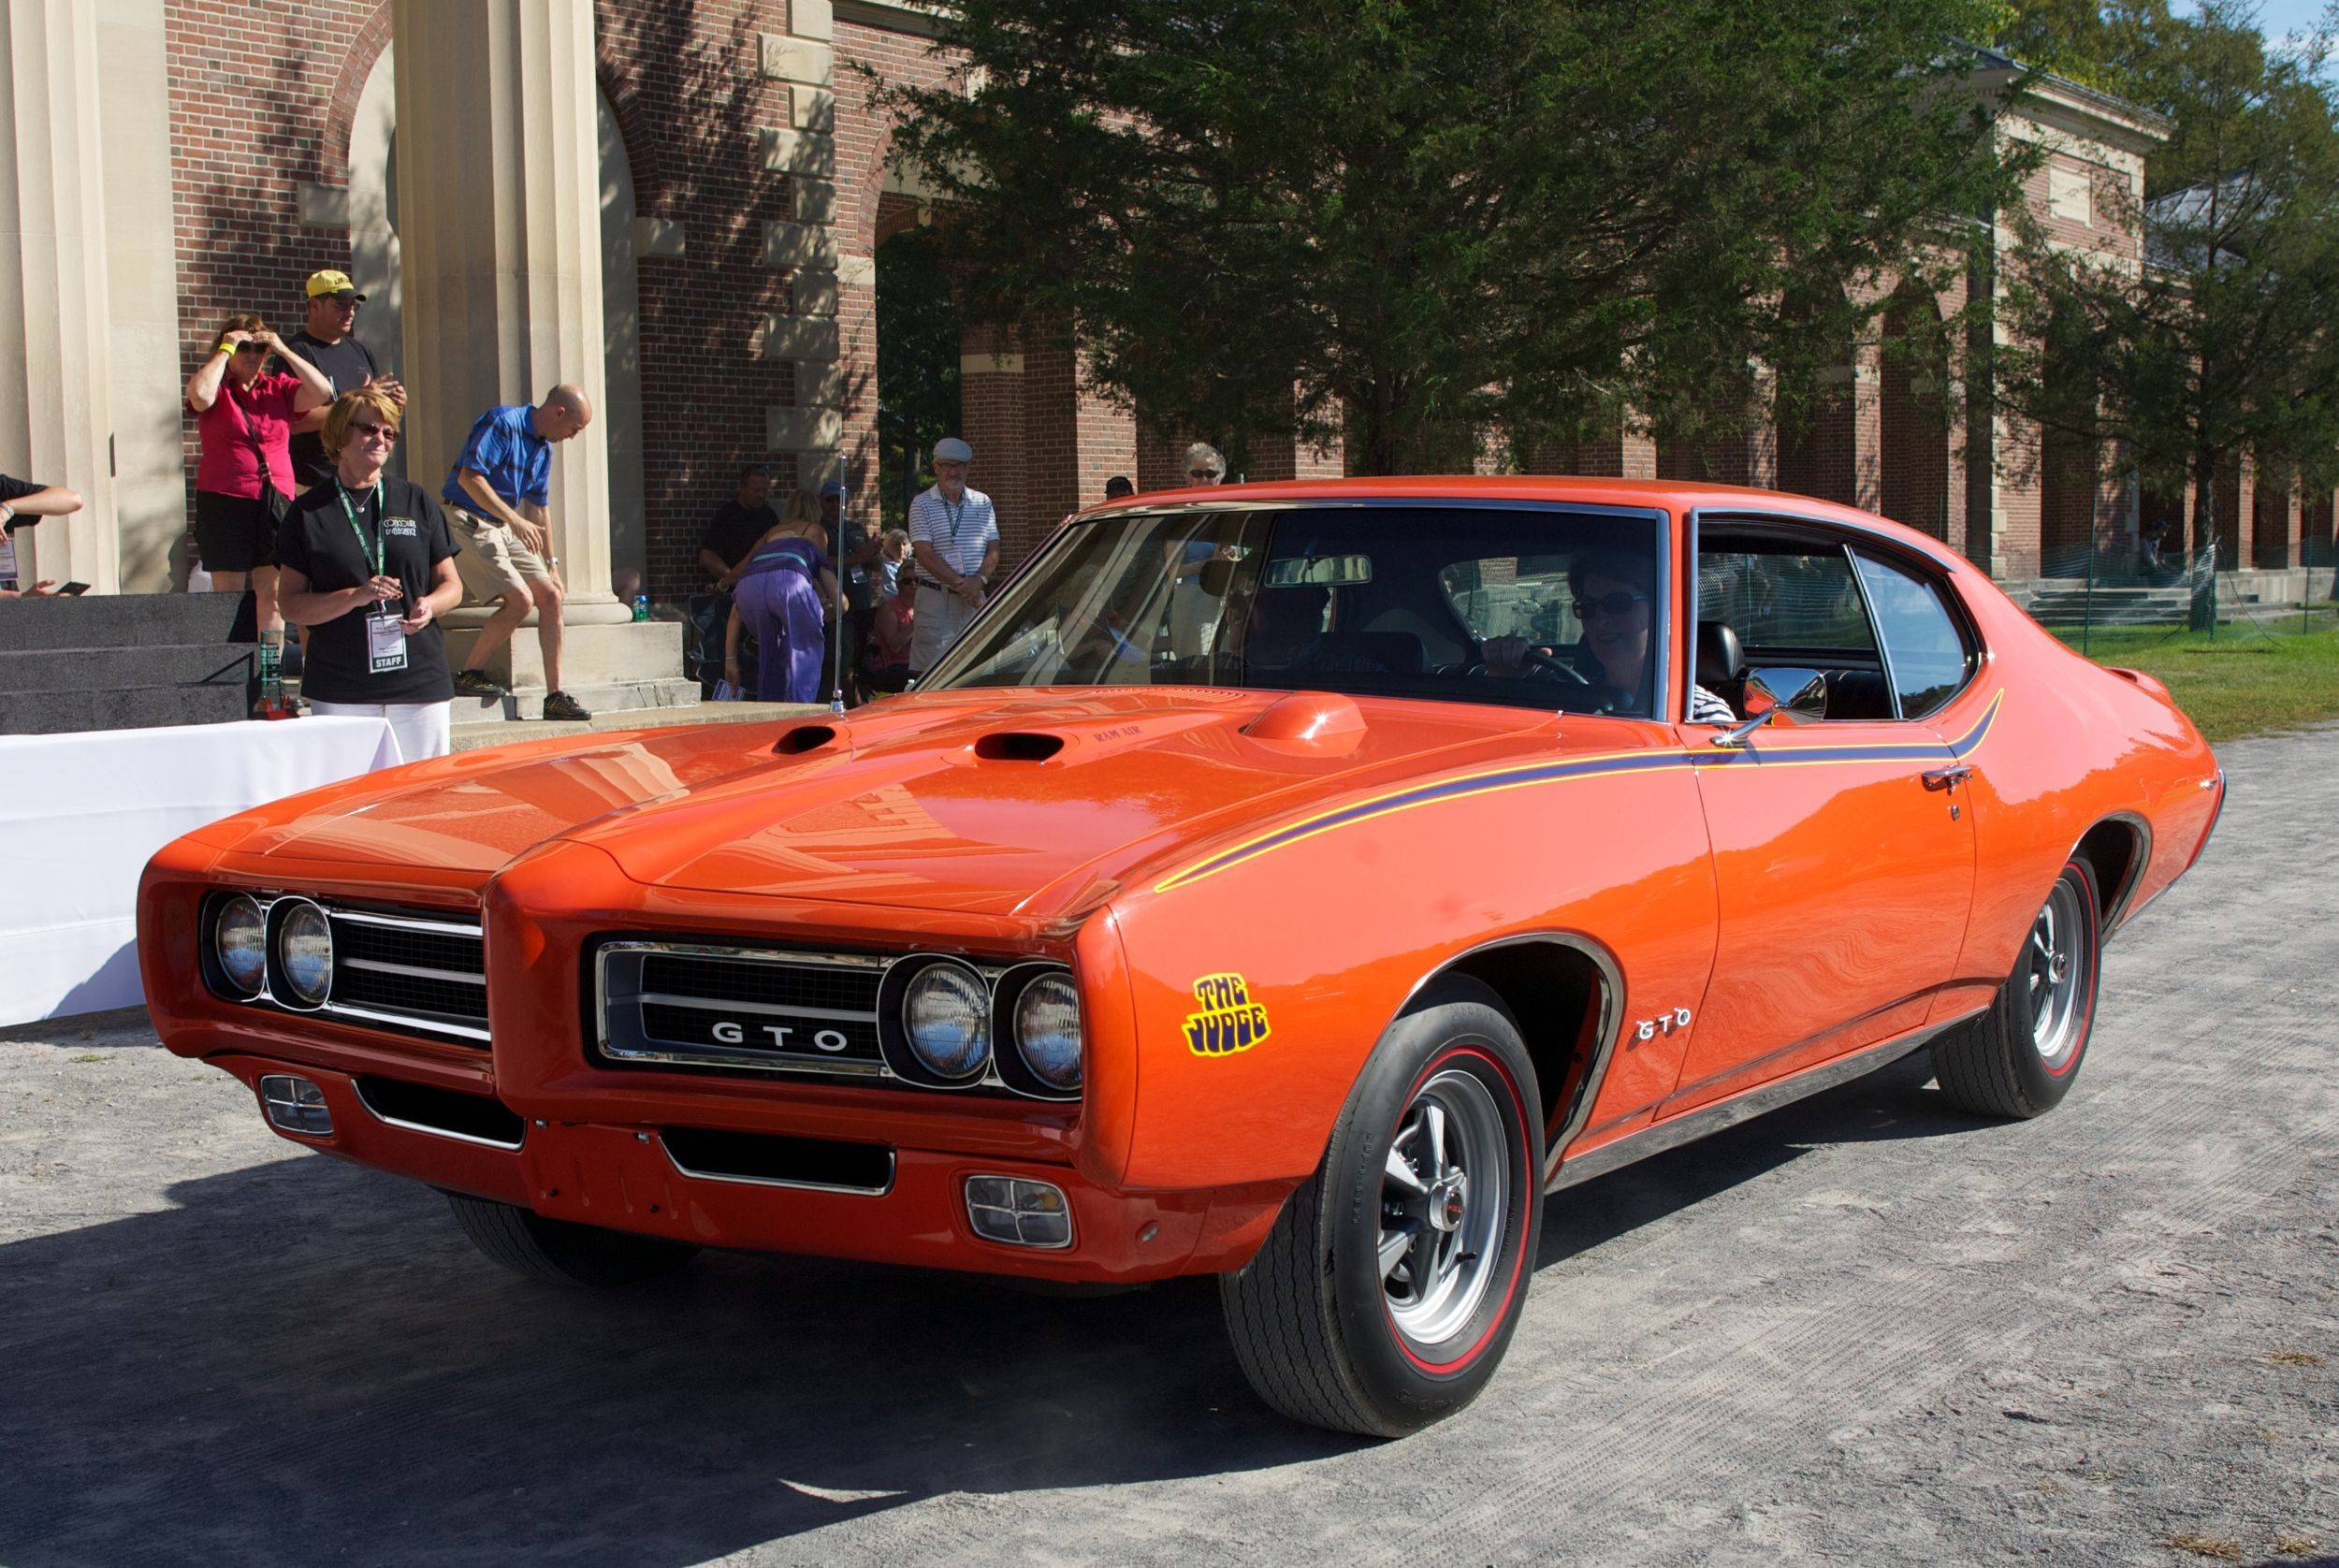 Had one just like this except mine had flames 1969 pontiac gto judge gto